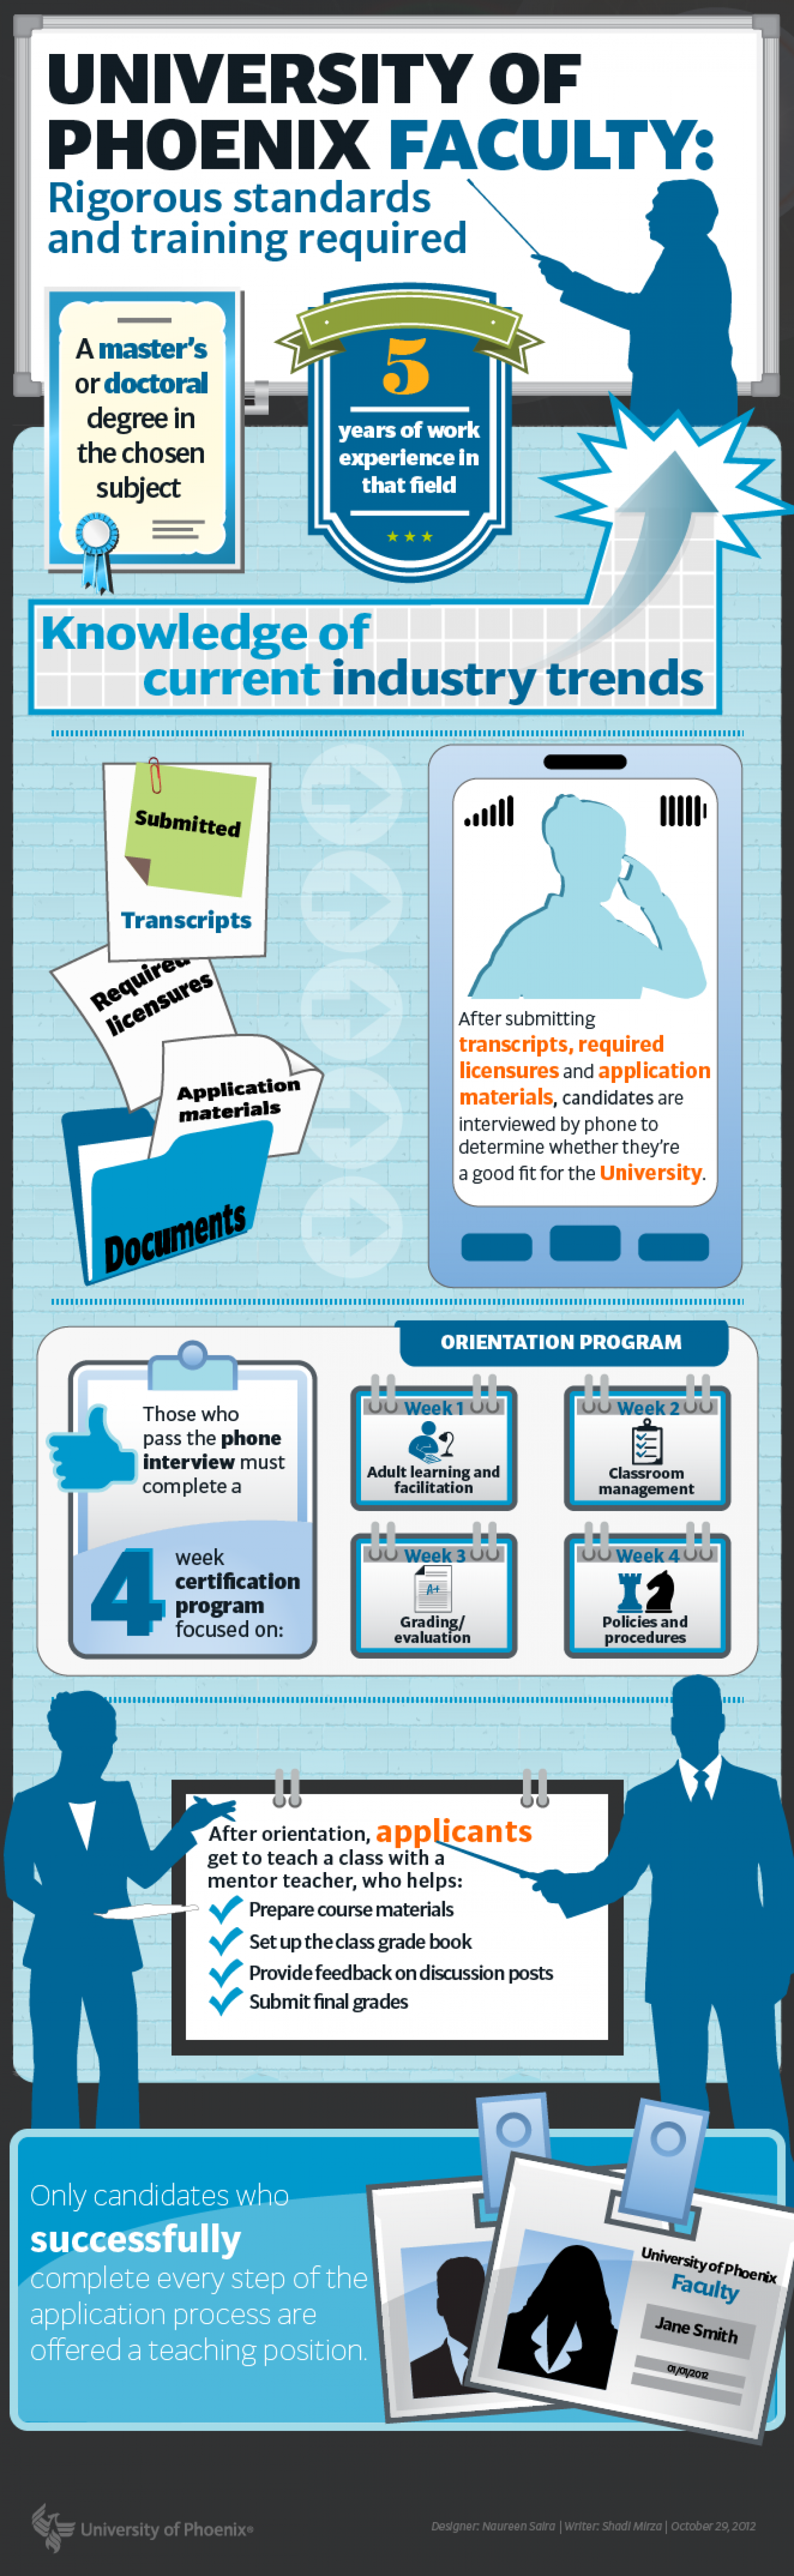 University Of Phoenix Faculty: Rigorous Standards And Training Required Infographic